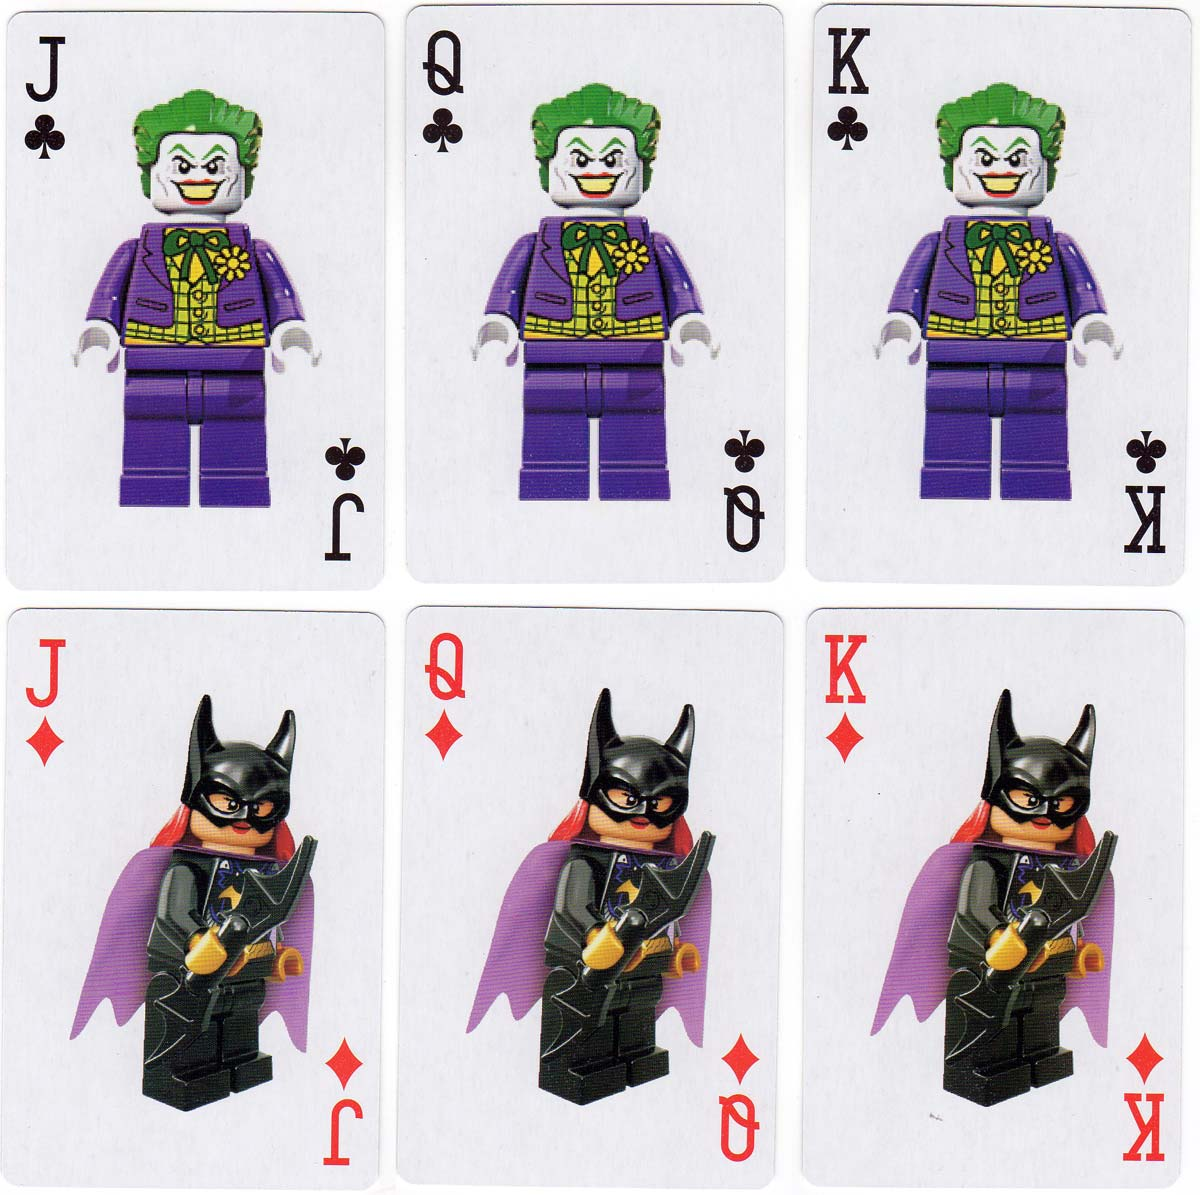 Lego Batman Movie playing cards, 2017